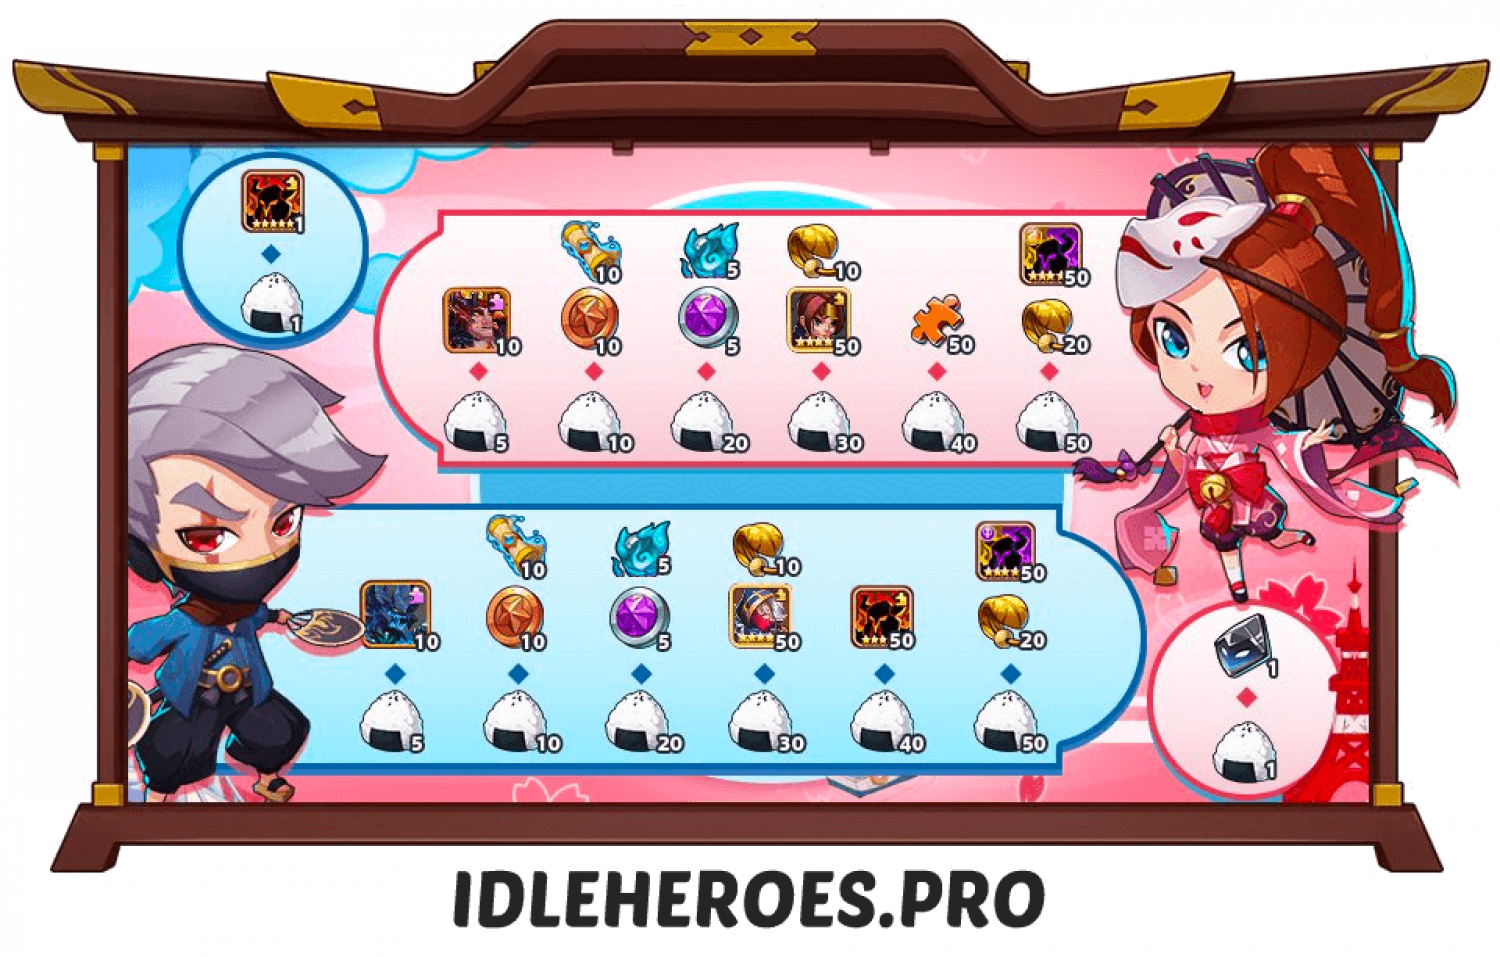 Idle Heroes Events (Guides and Sneak Peeks) - Idle Heroes Pro Infographic